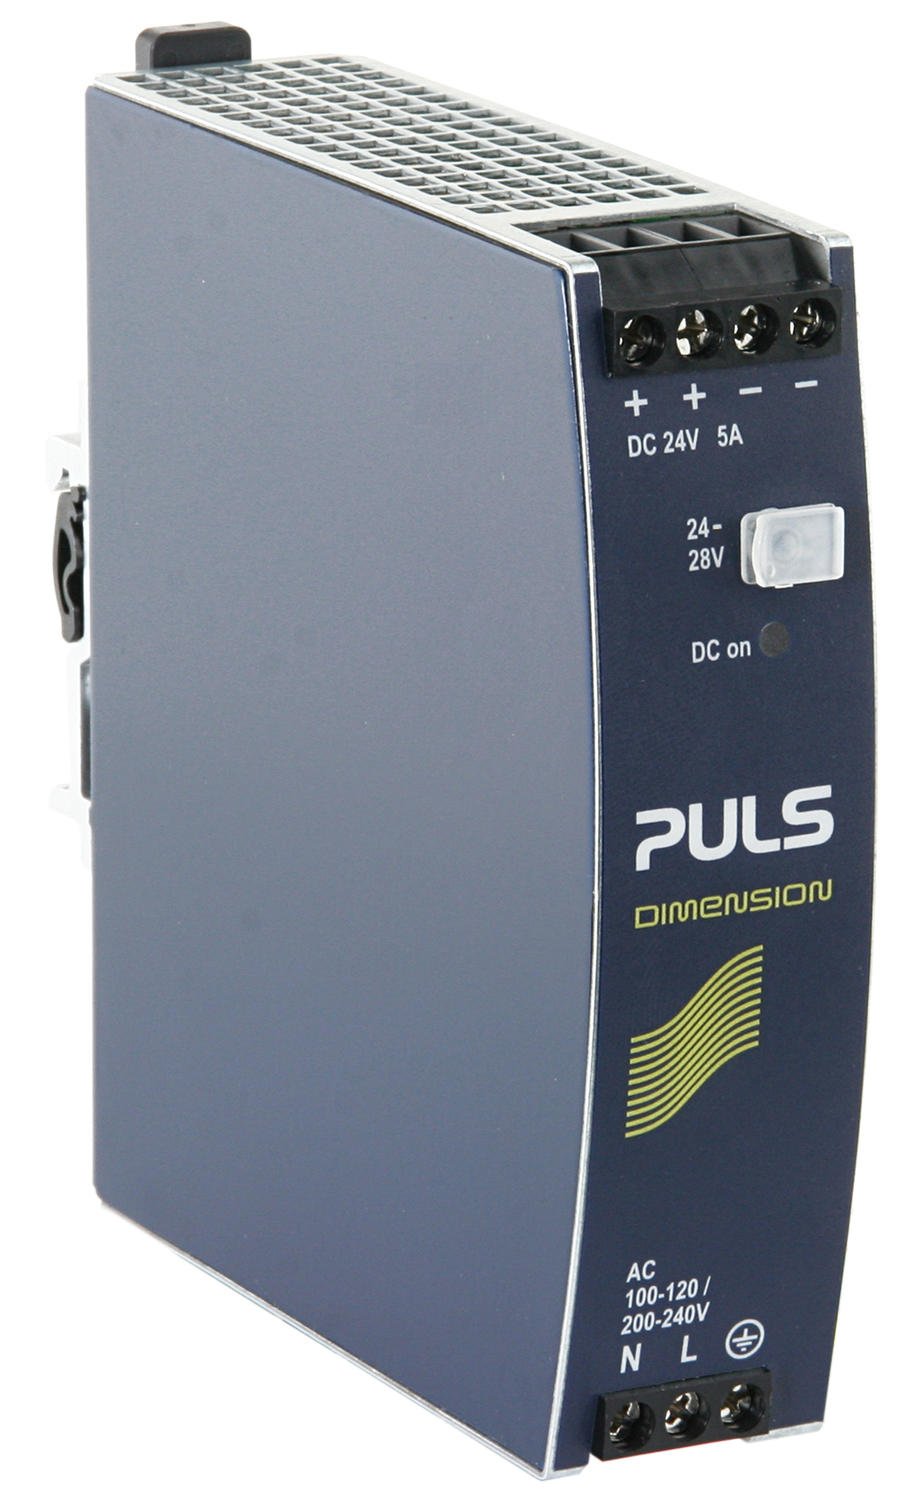 Power supply 1-phase, 24 V DC Dimension C series